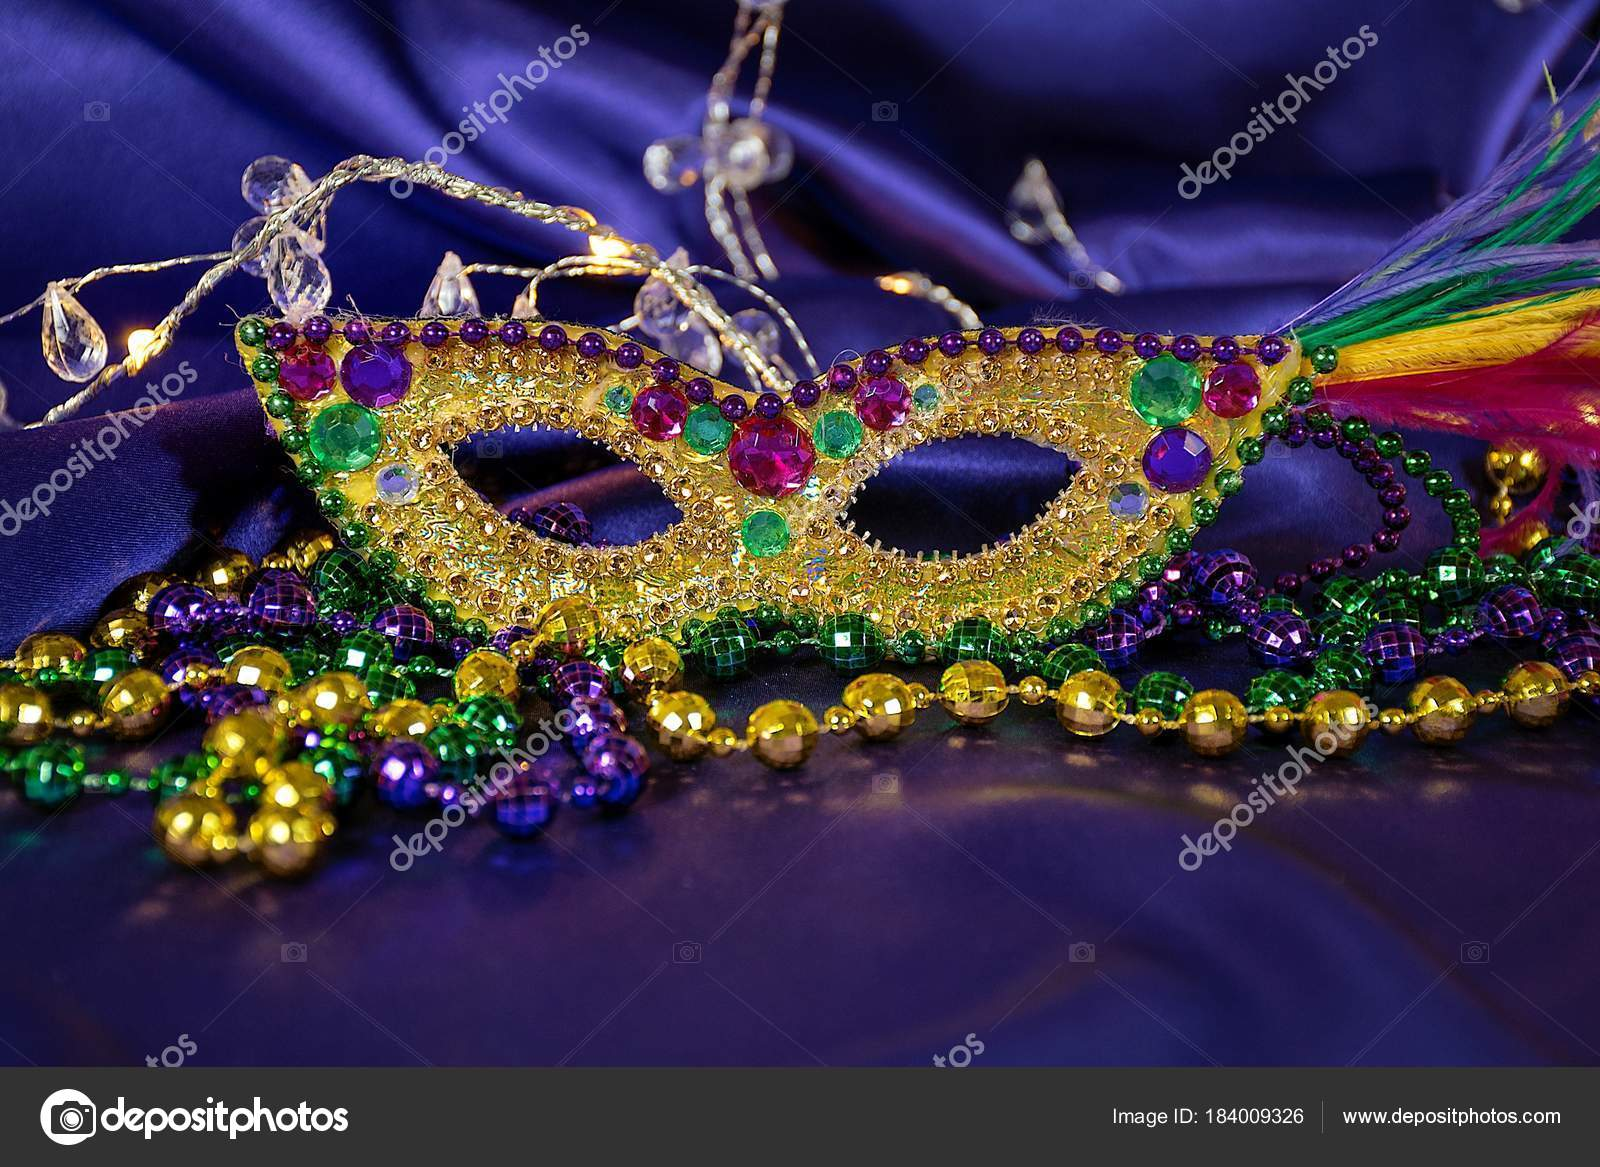 they eclectics day to orleans we after do were carnival again year mardi see will gras until beads them the taken new have next